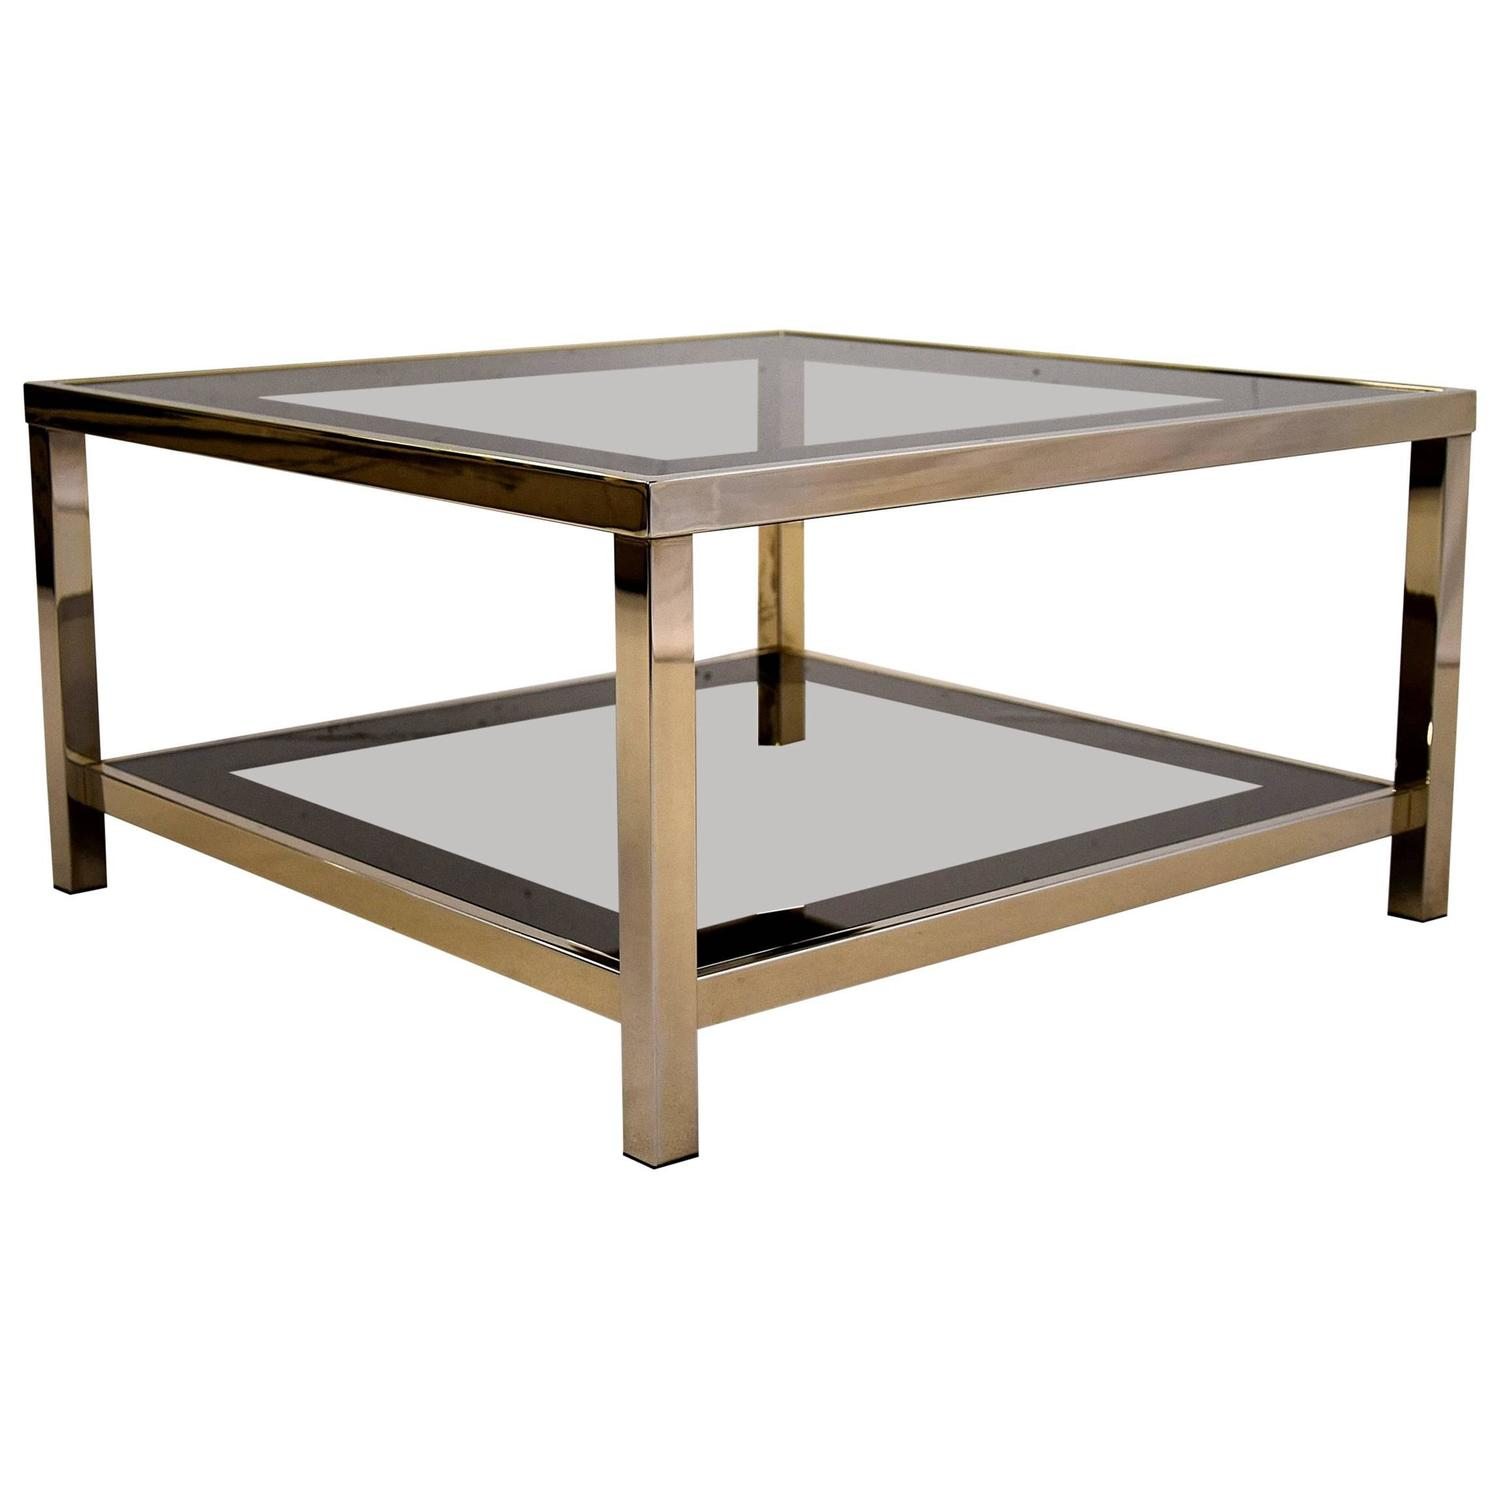 Gold Plated Coffee Table: Mid-Century Modern 23-Karat Gold-Plated Coffee Table For